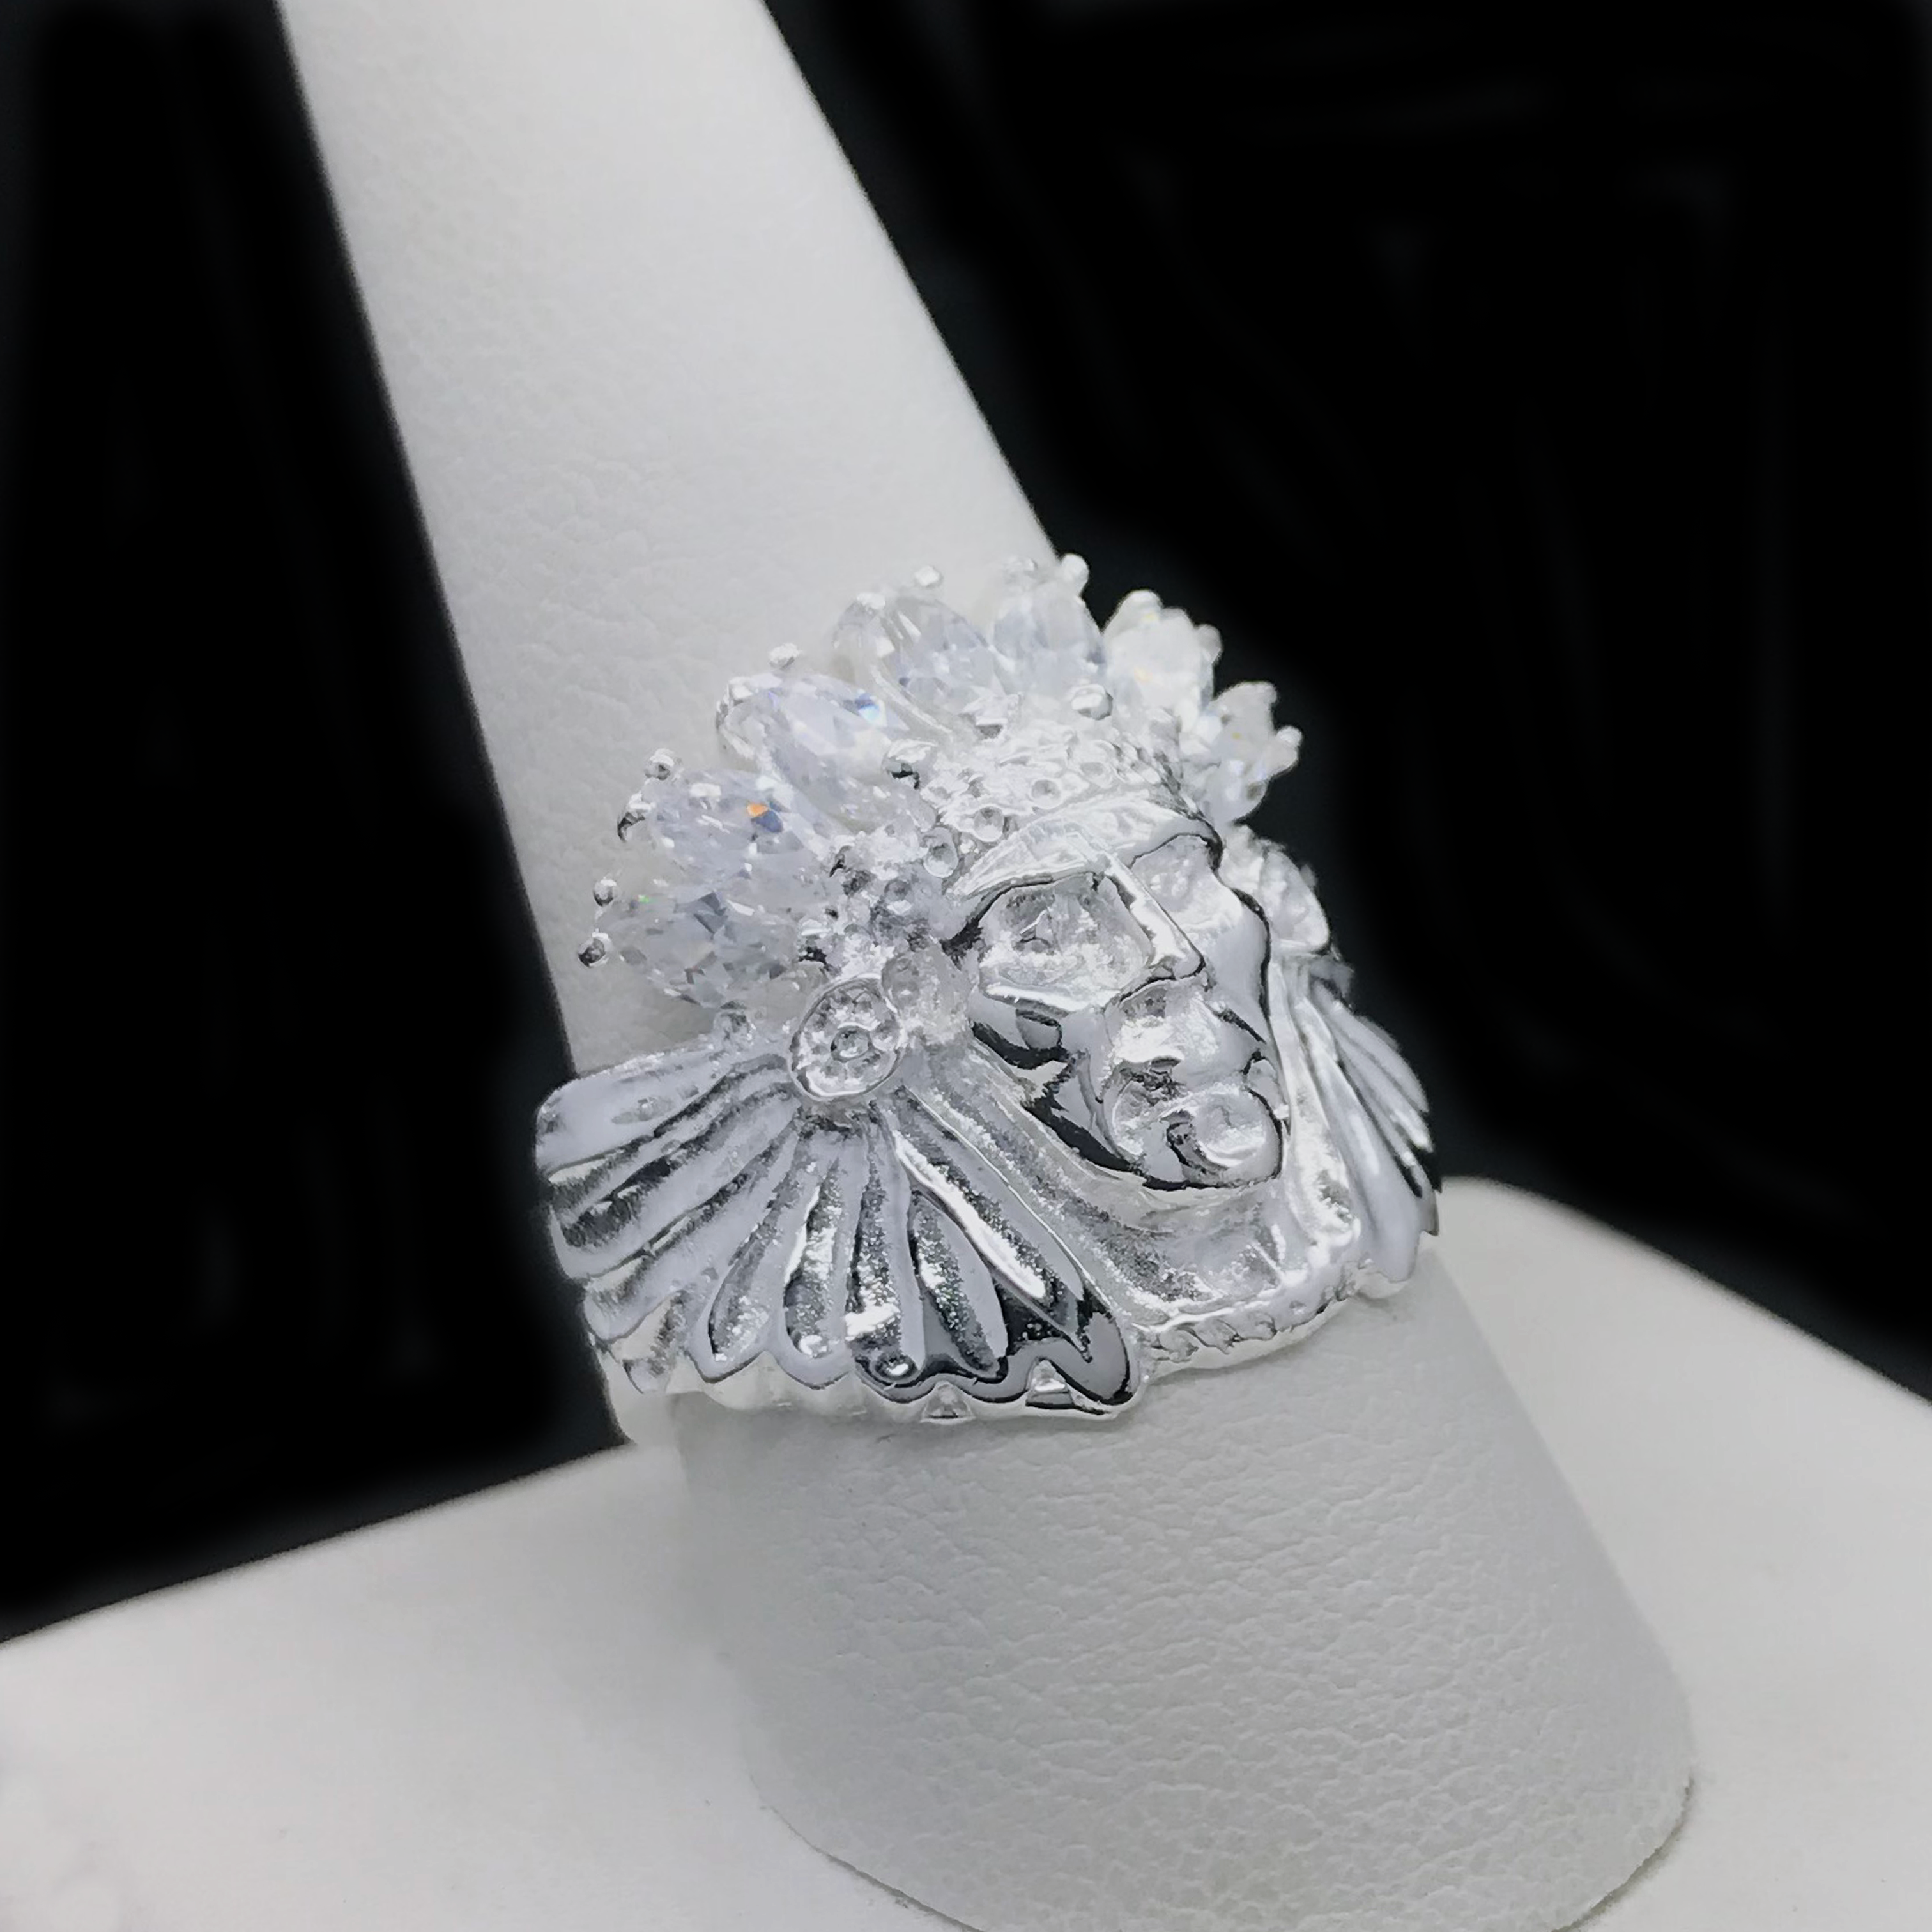 Anillo De Indio Con Cubic Zirconia De 925 Plata/Sterling Silver Indian Cubic Zirconia Ring